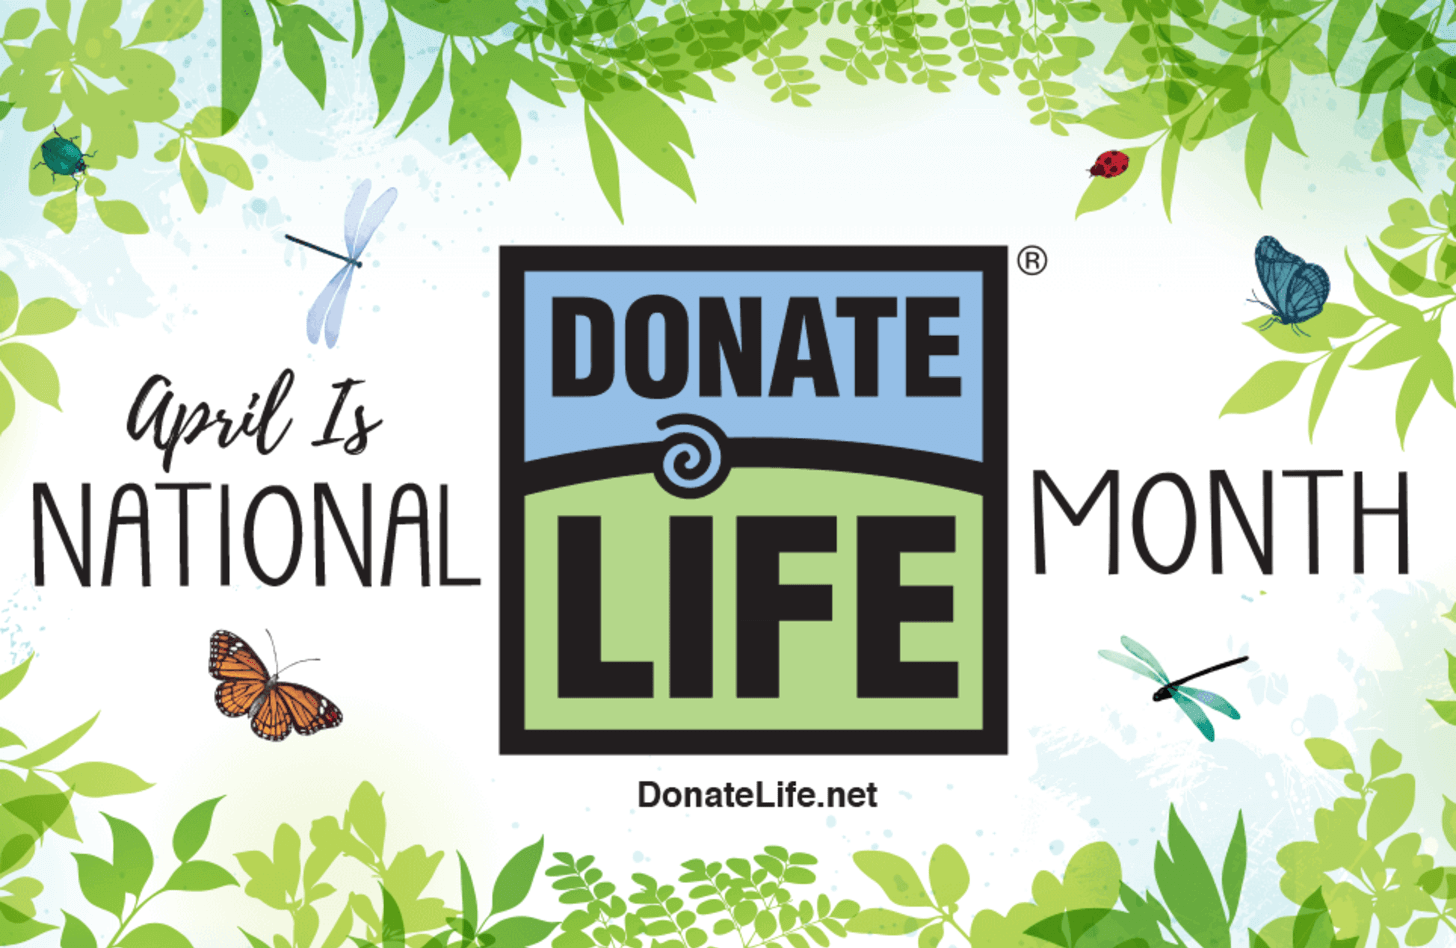 2020 Donate Life Month artwork, the scene of a garden with flowers and butterflies.